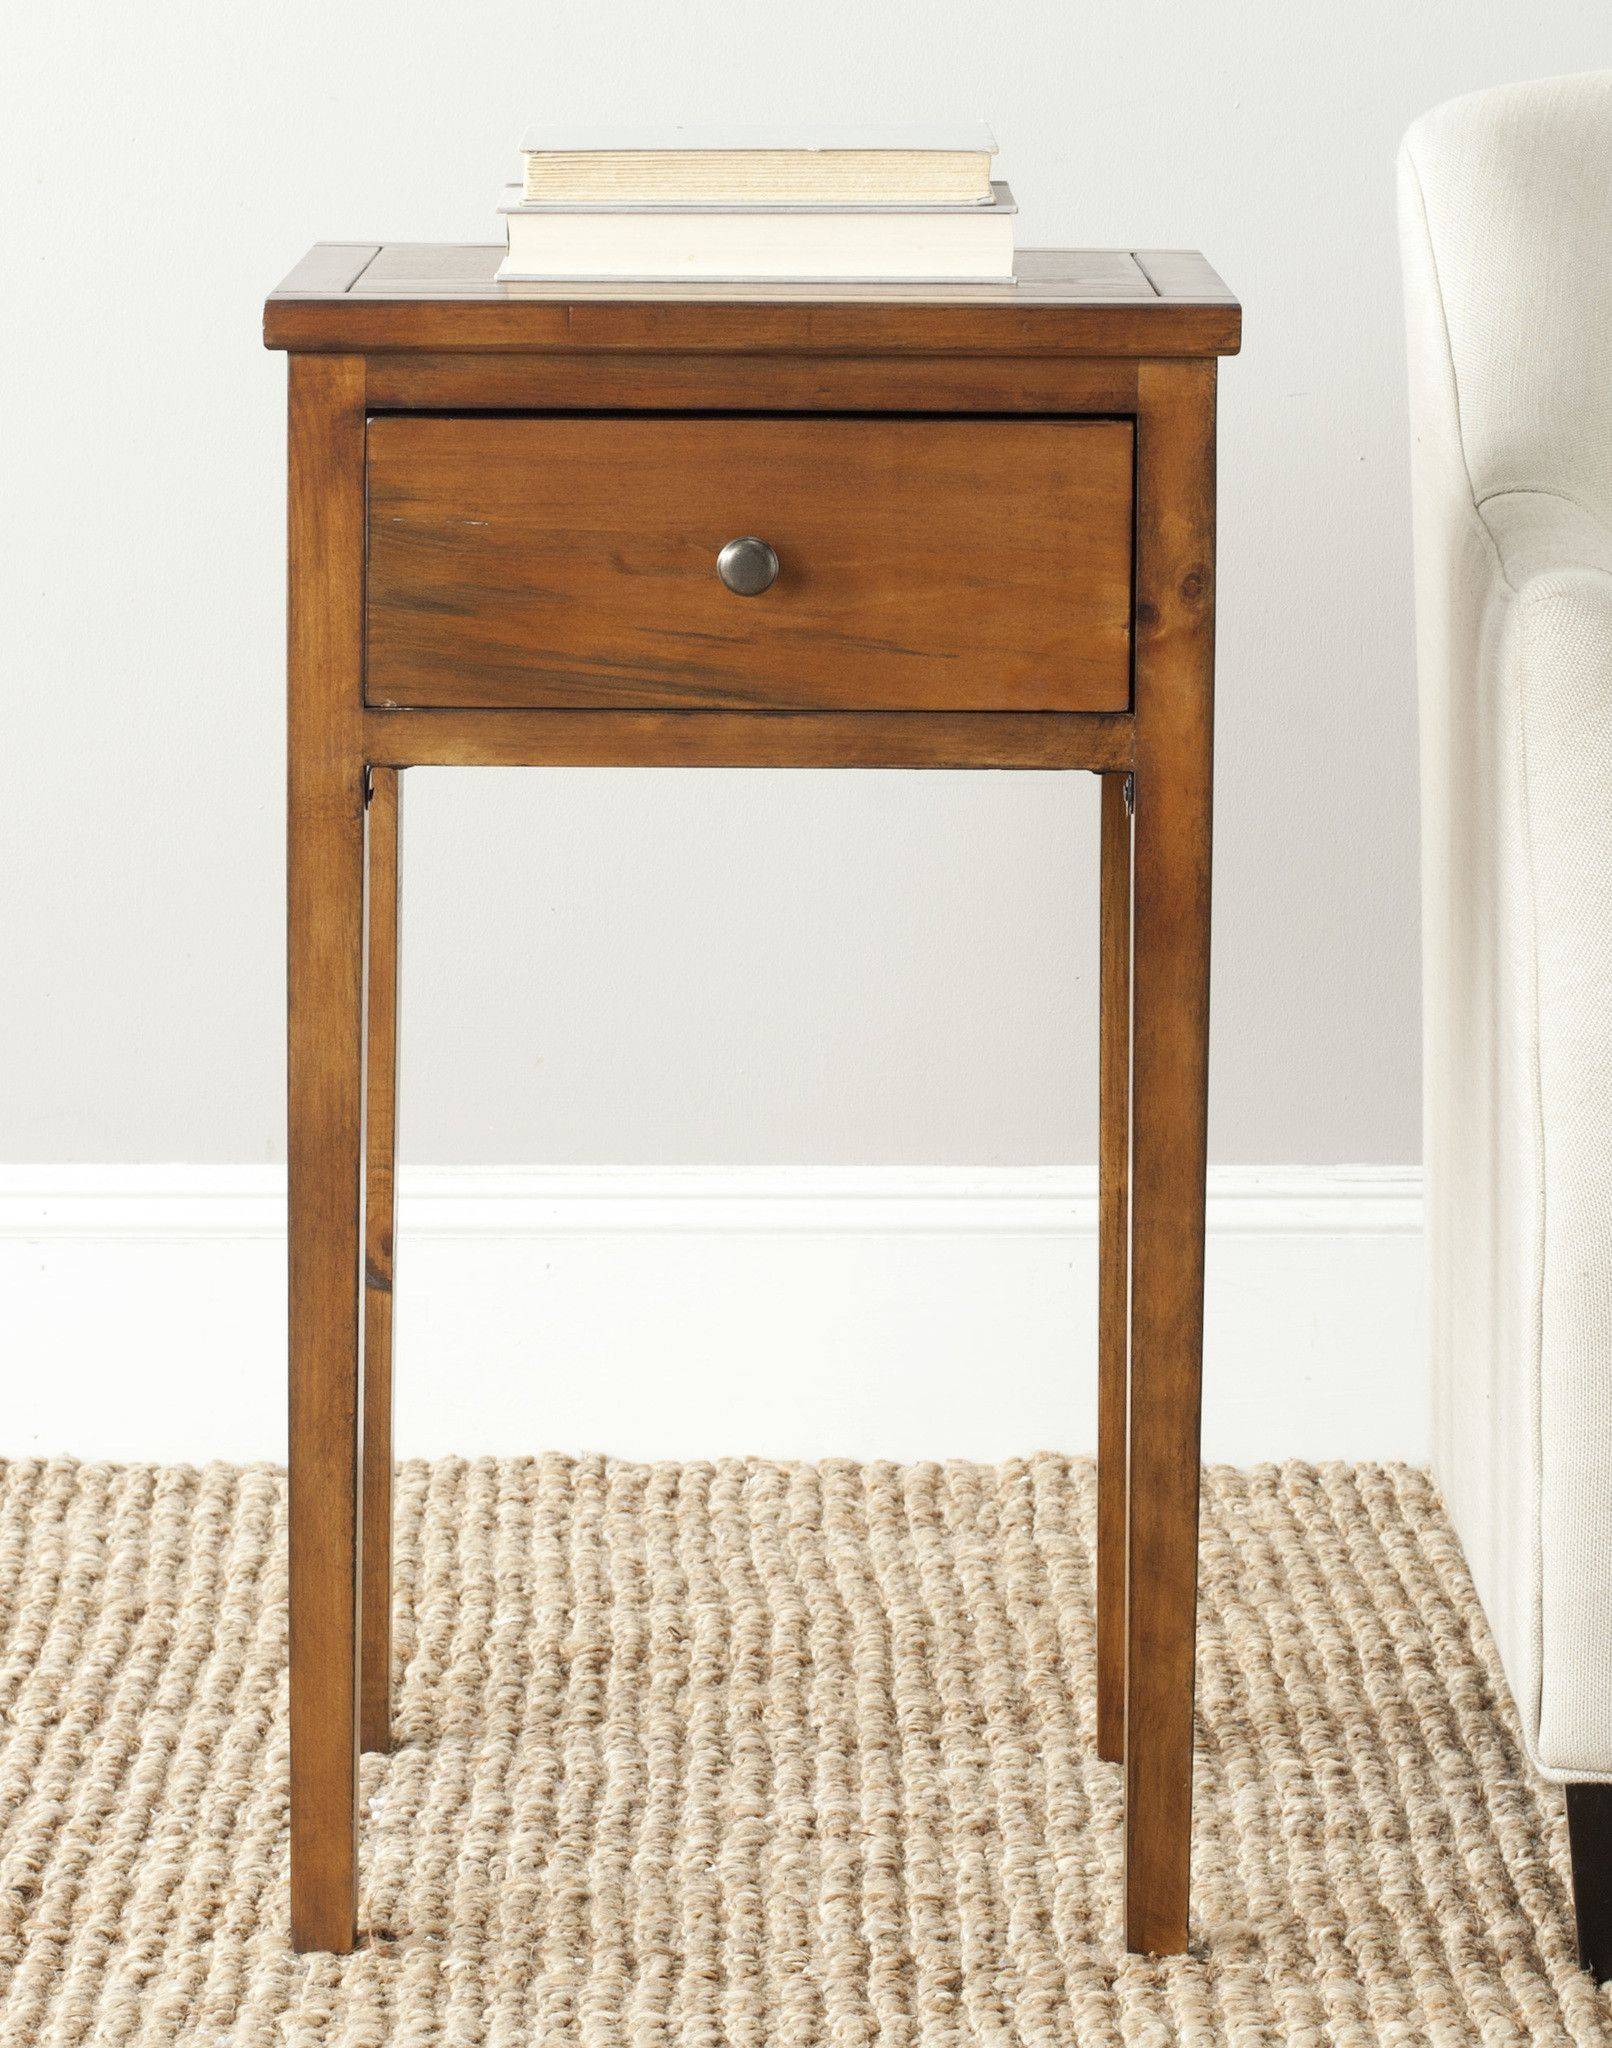 Safavieh Abel End Table With Storage Drawer   Bethroom ideas ...